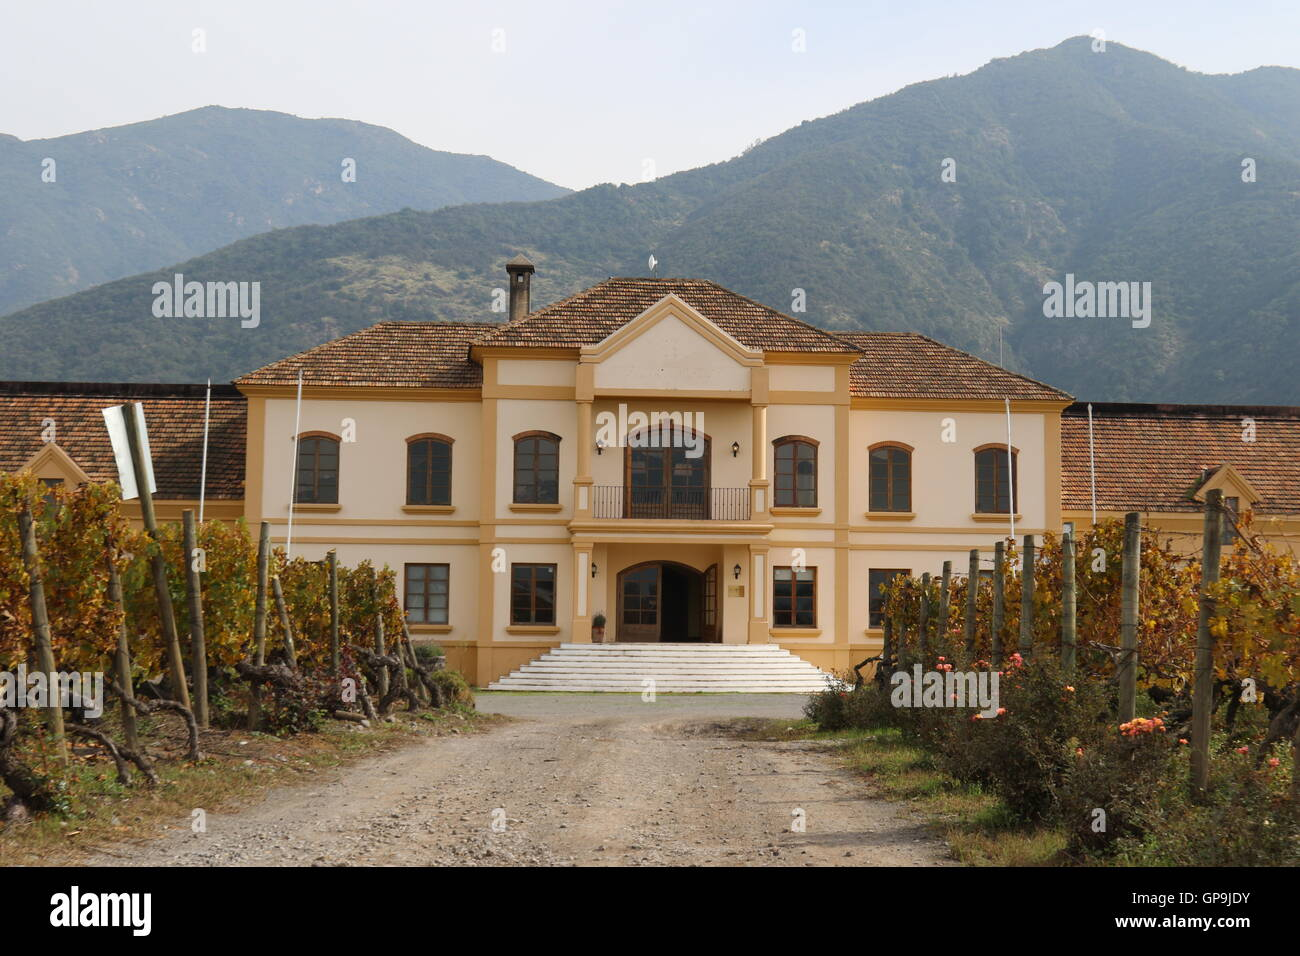 Vineyard mansion at Koyle Family Vineyards, Los Lingues, Alto Colchagua,Chile - Stock Image